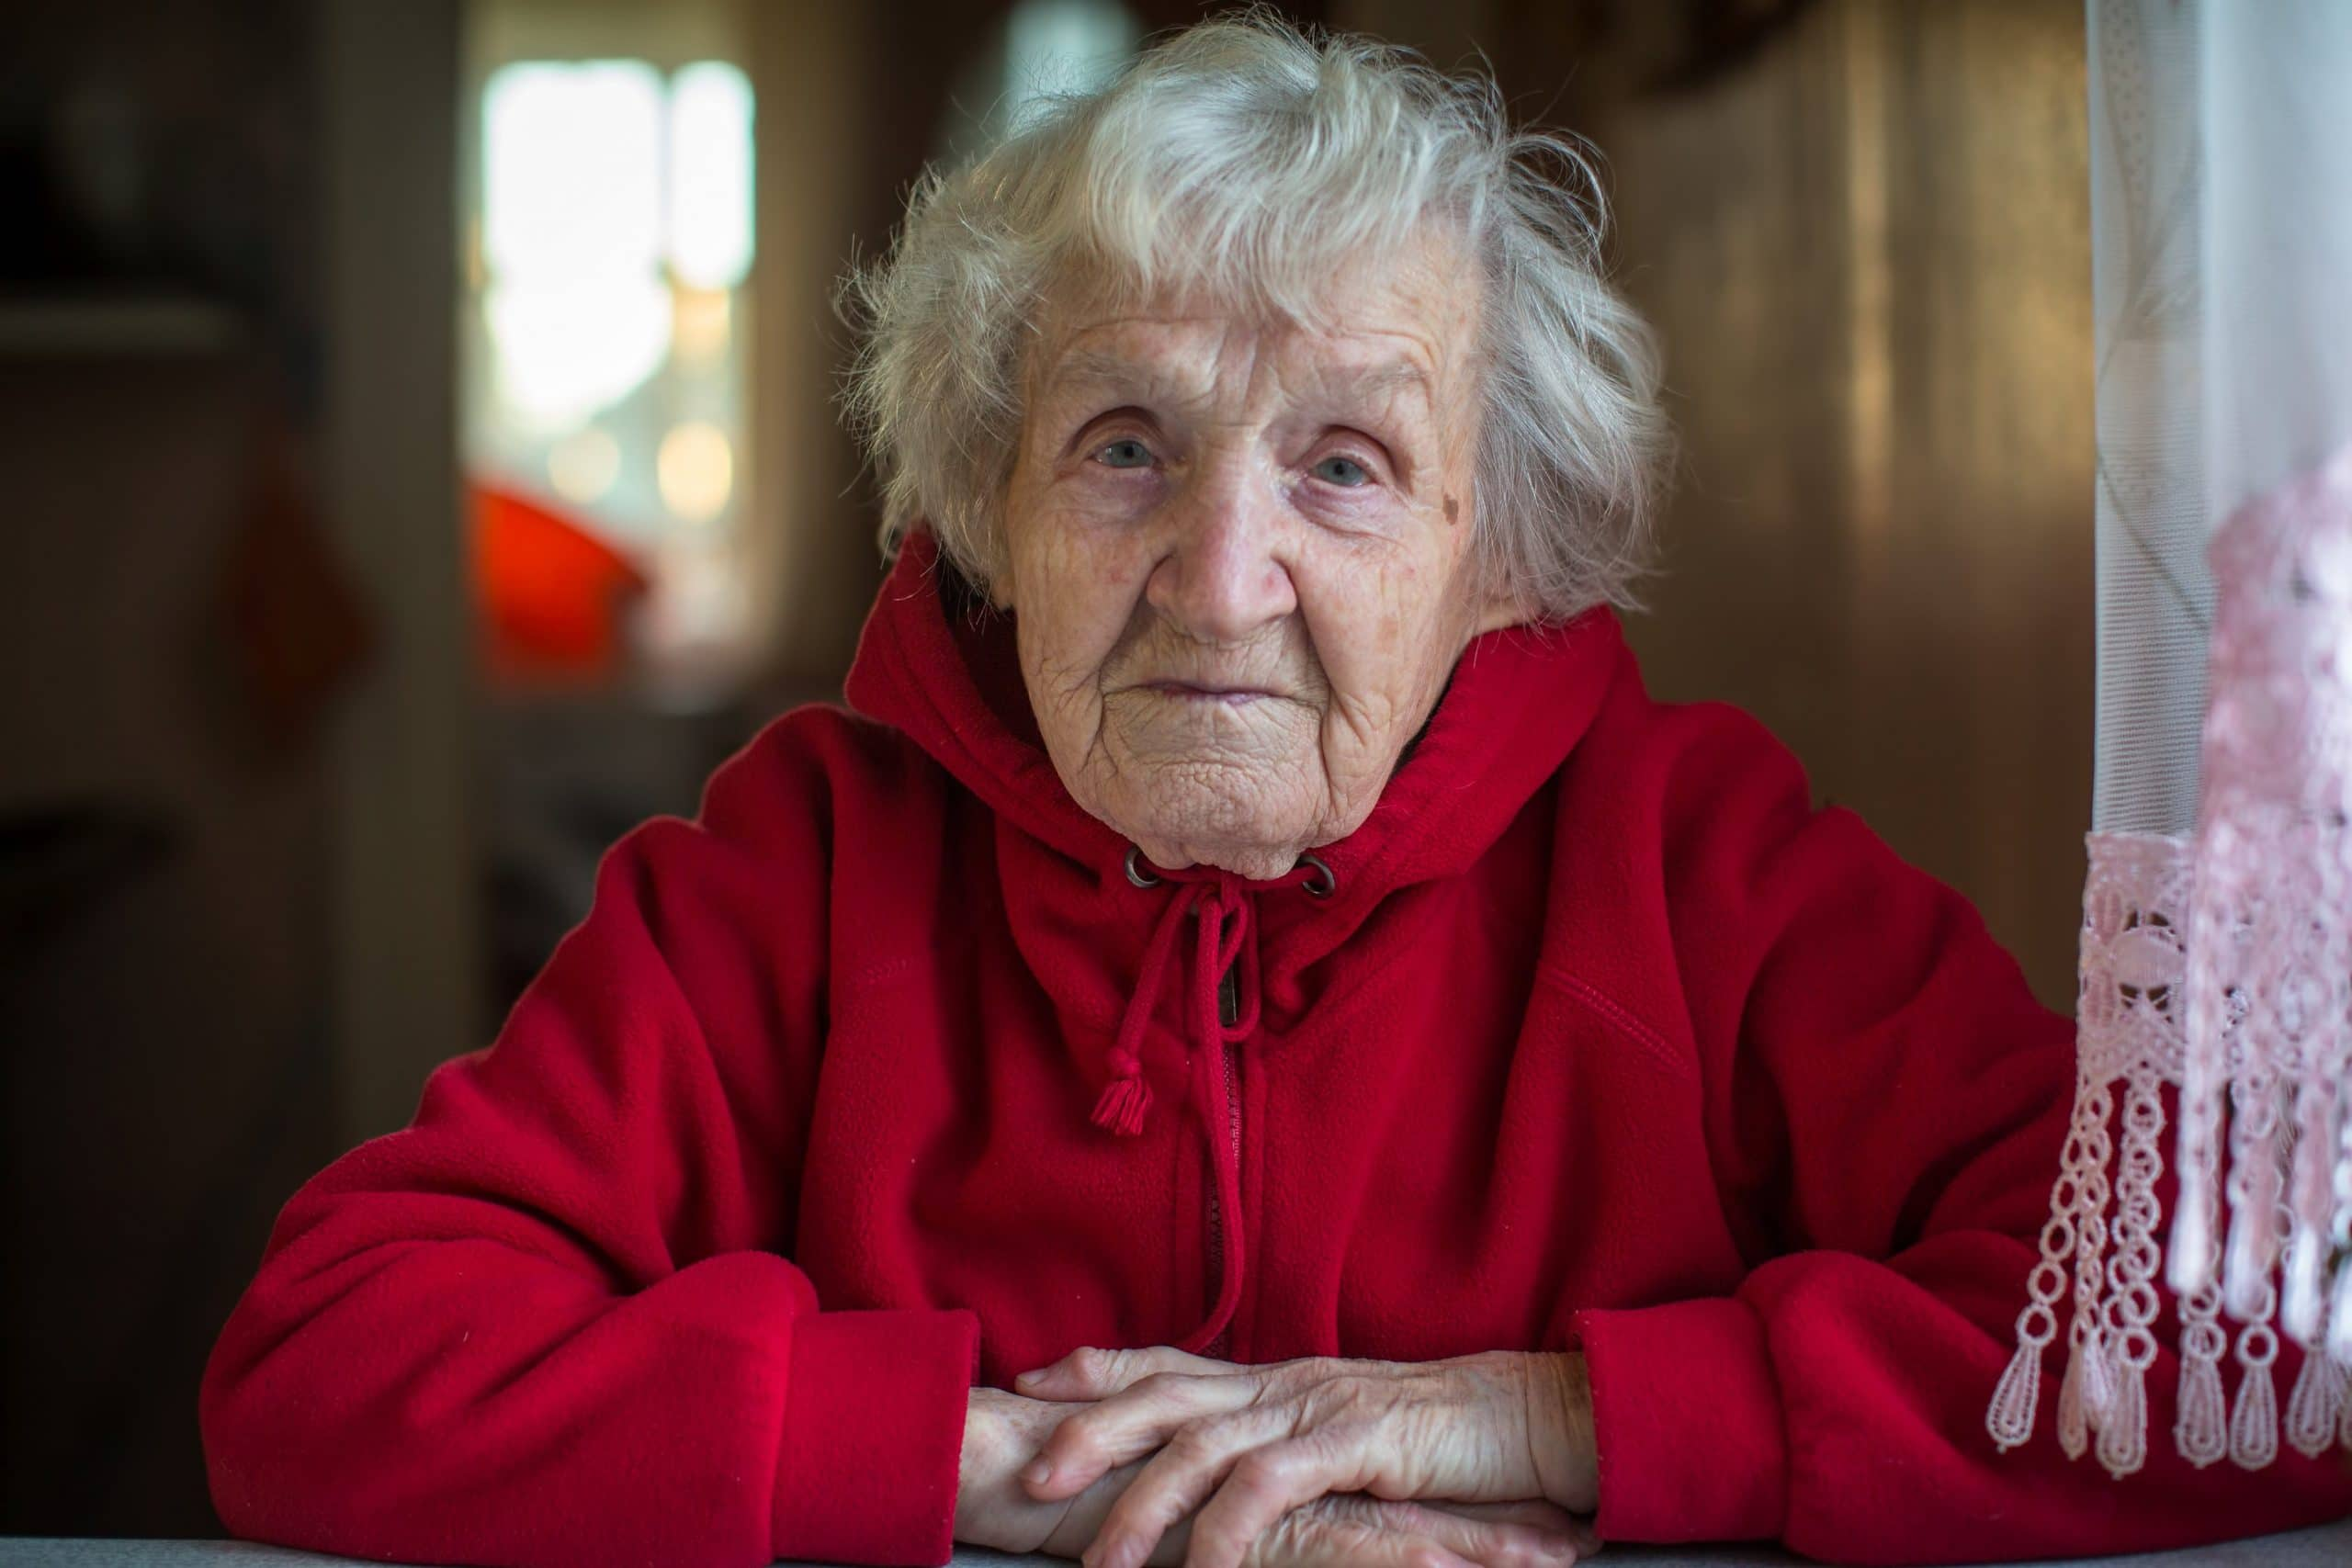 Lonely senior women in red sweater